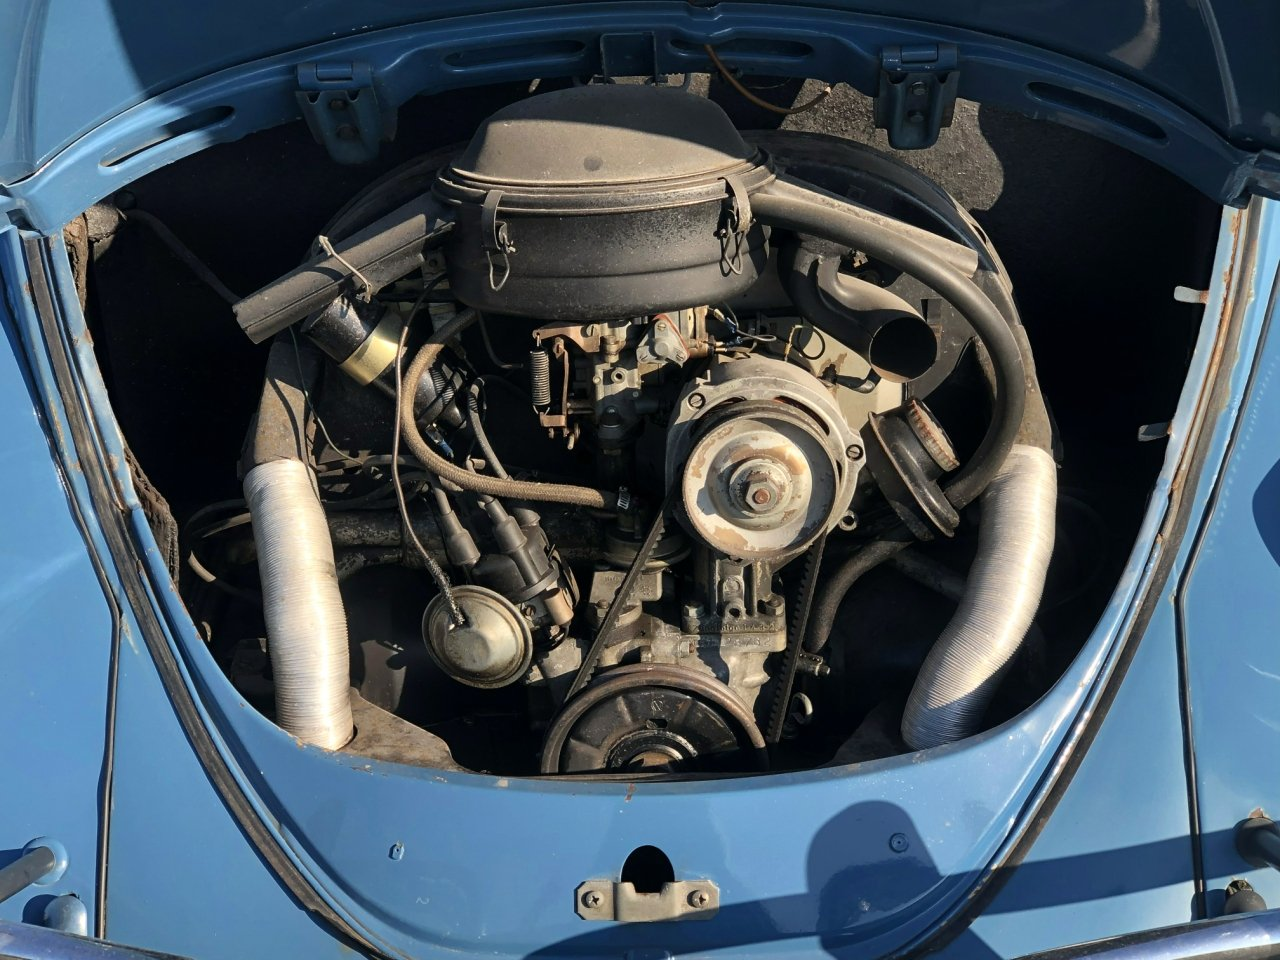 1967 Volkswagen Beetle 1300cc SOLD (picture 6 of 6)